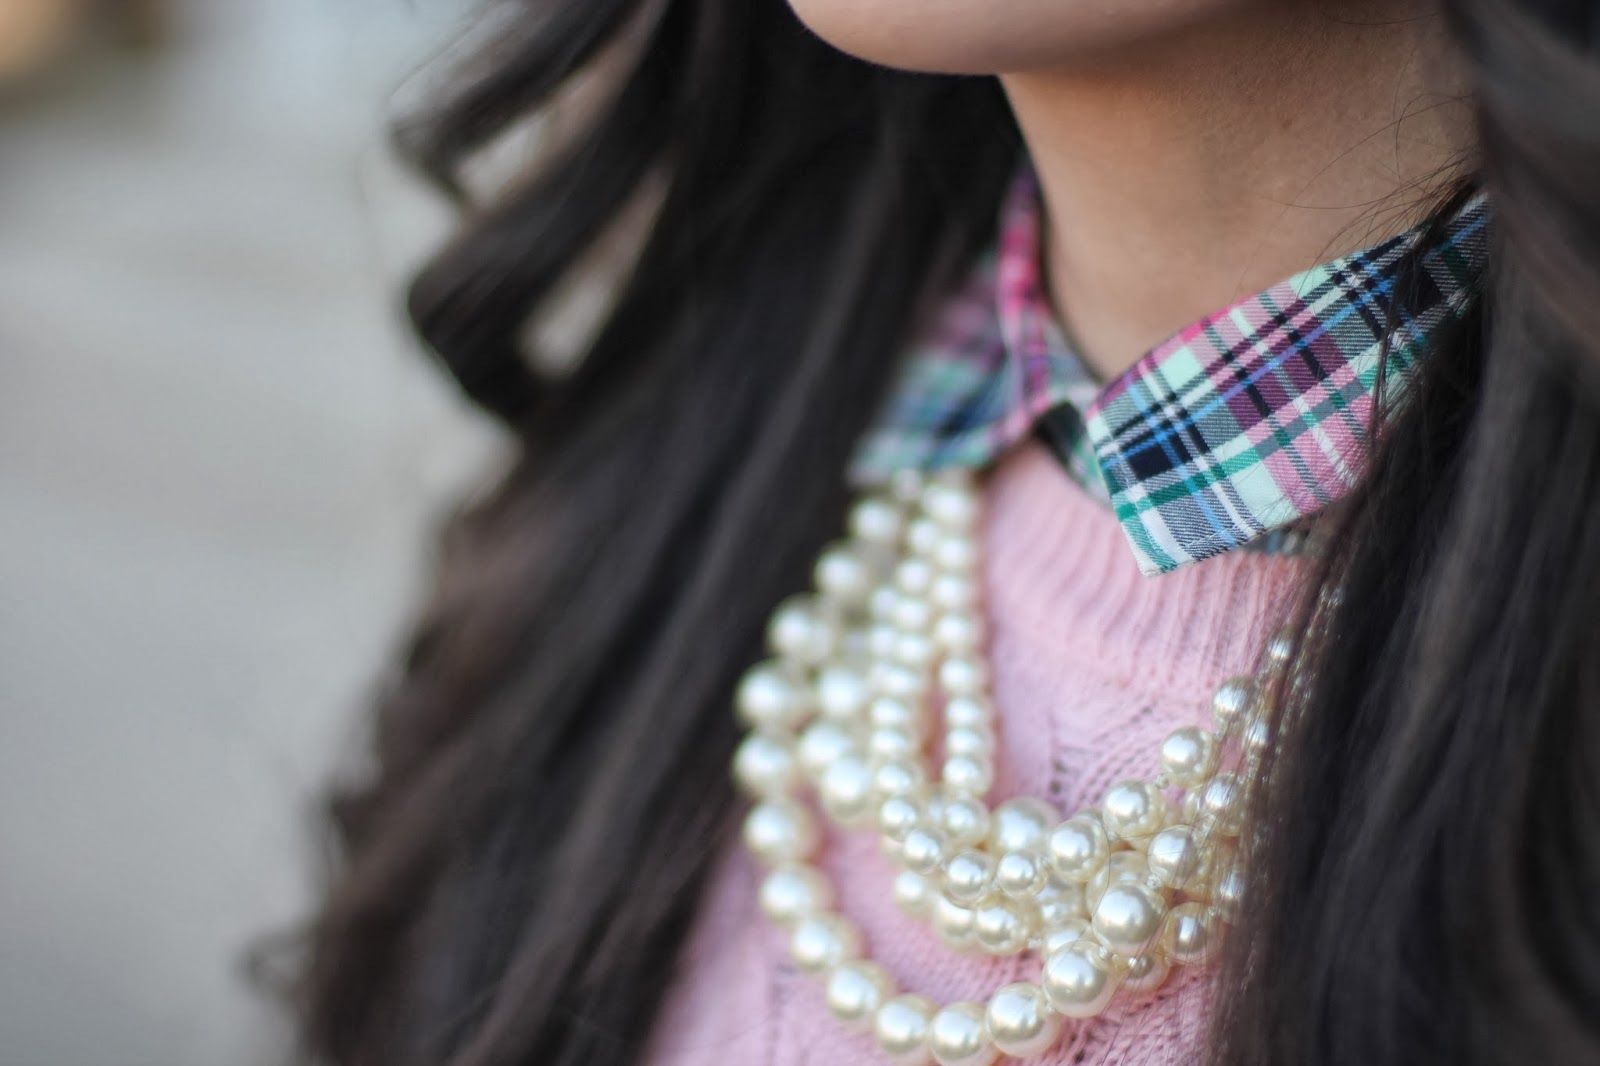 Shirt+sweater+necklace=fall/spring perfection!